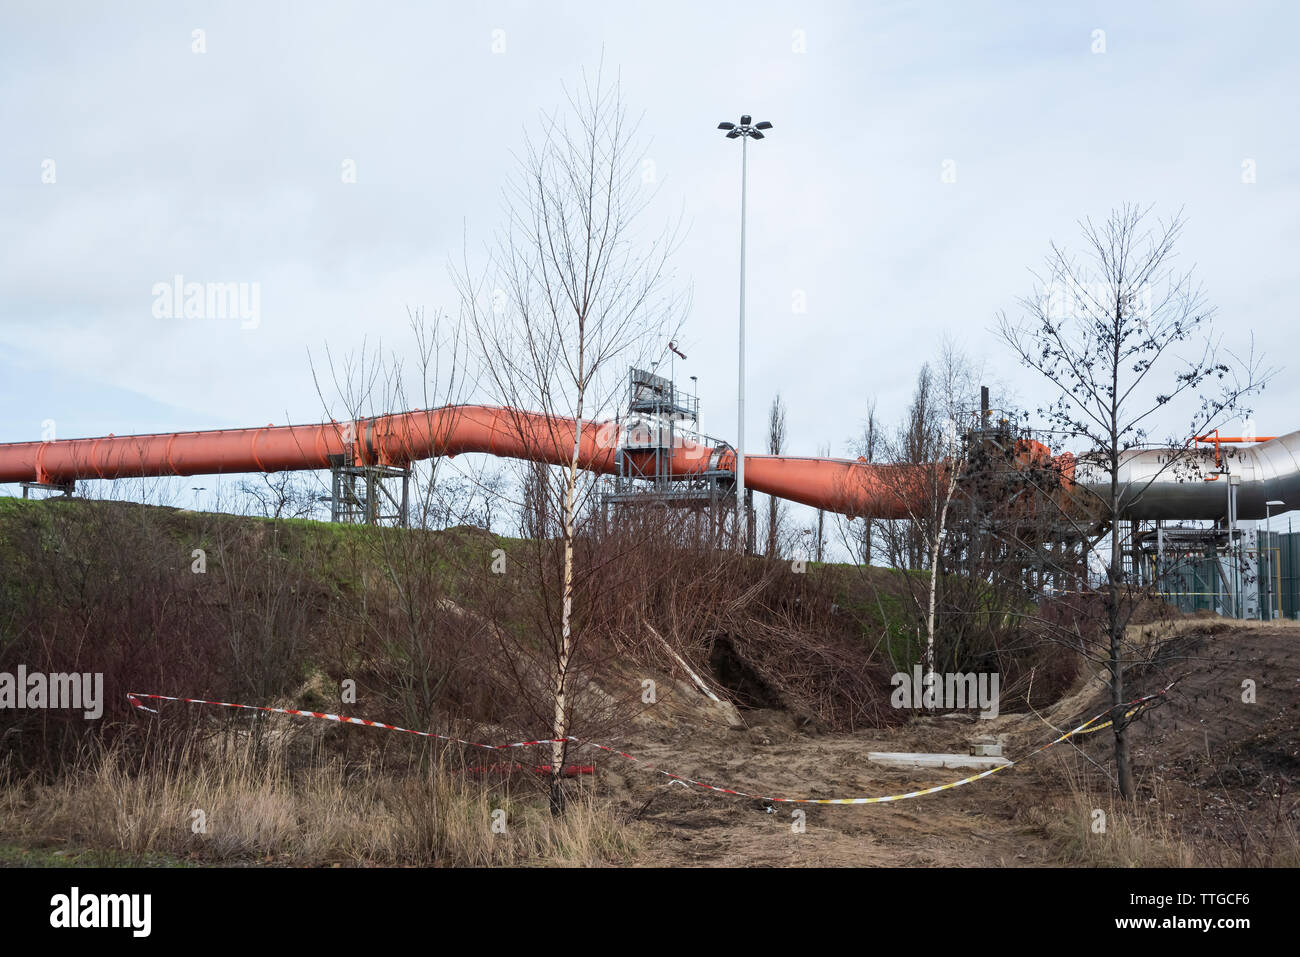 Pipeline and trees in an industrial landscape - Stock Image